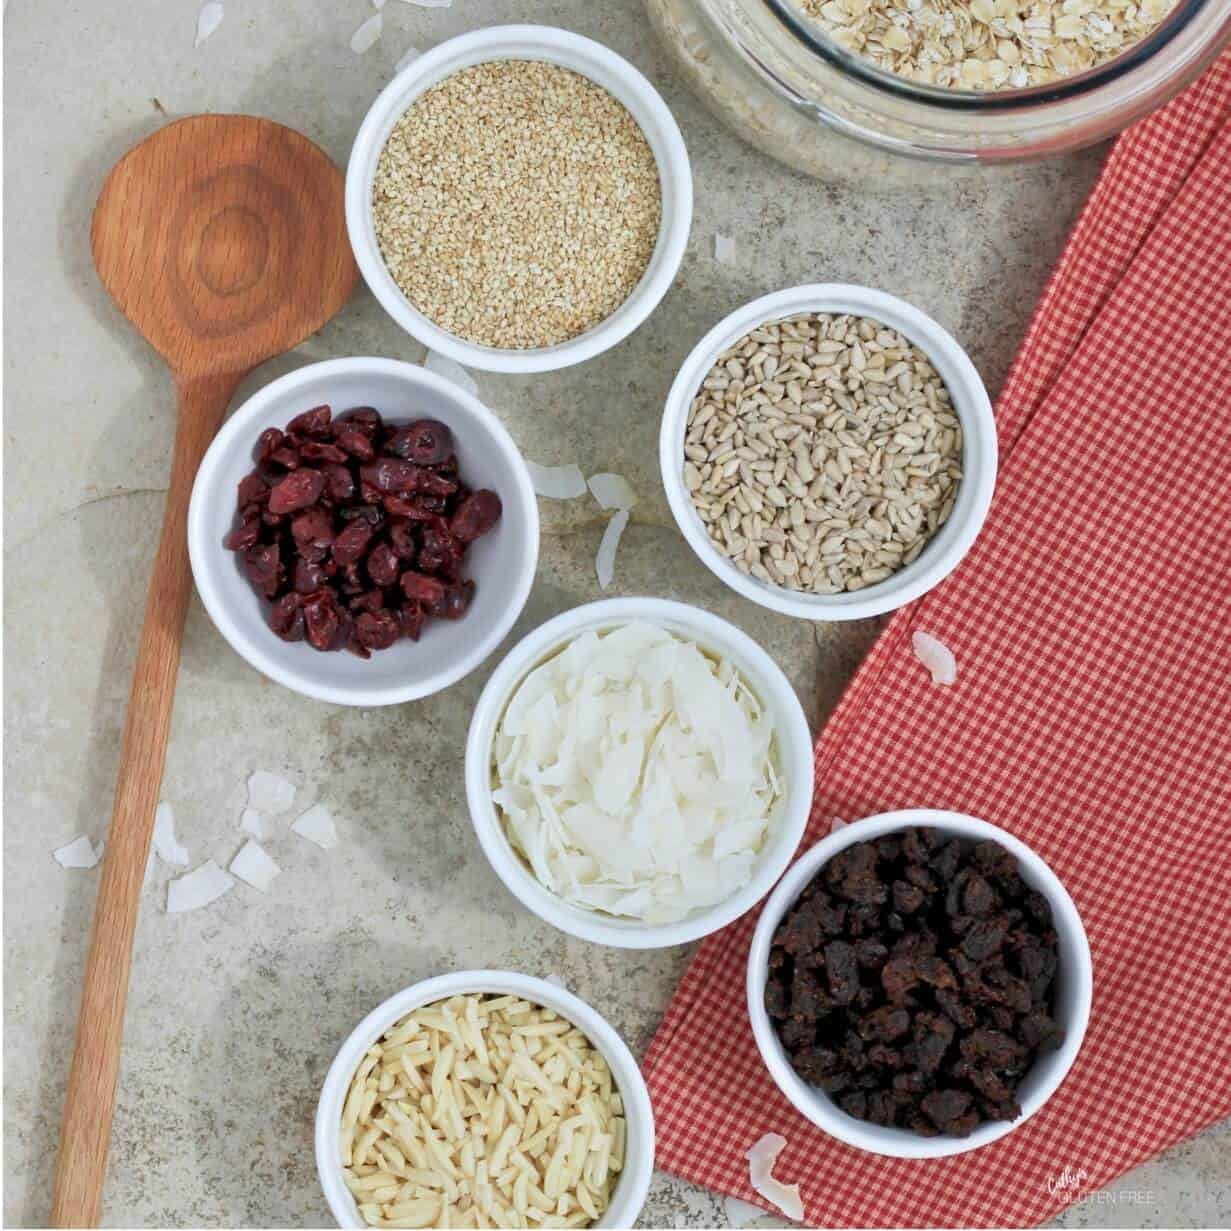 Gluten Free Granola Ingredients